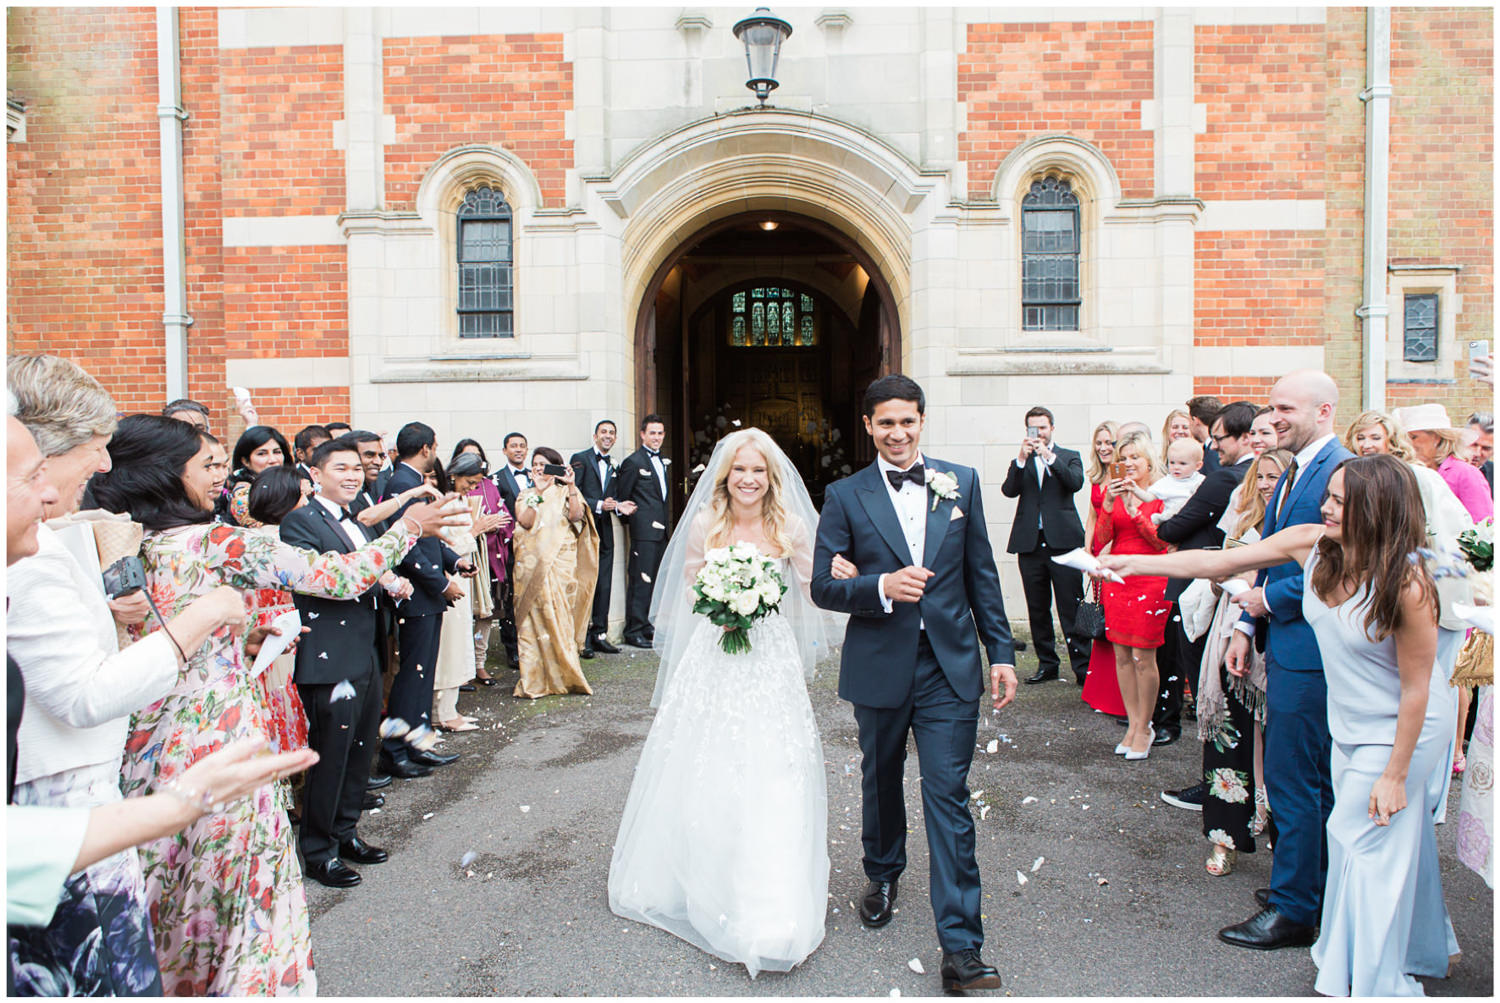 Bride and groom confetti shot, Classic wedding at Christ Hospital School with bride wearing Mira Zwillinger, Lucy Davenport Photography, Classic wedding